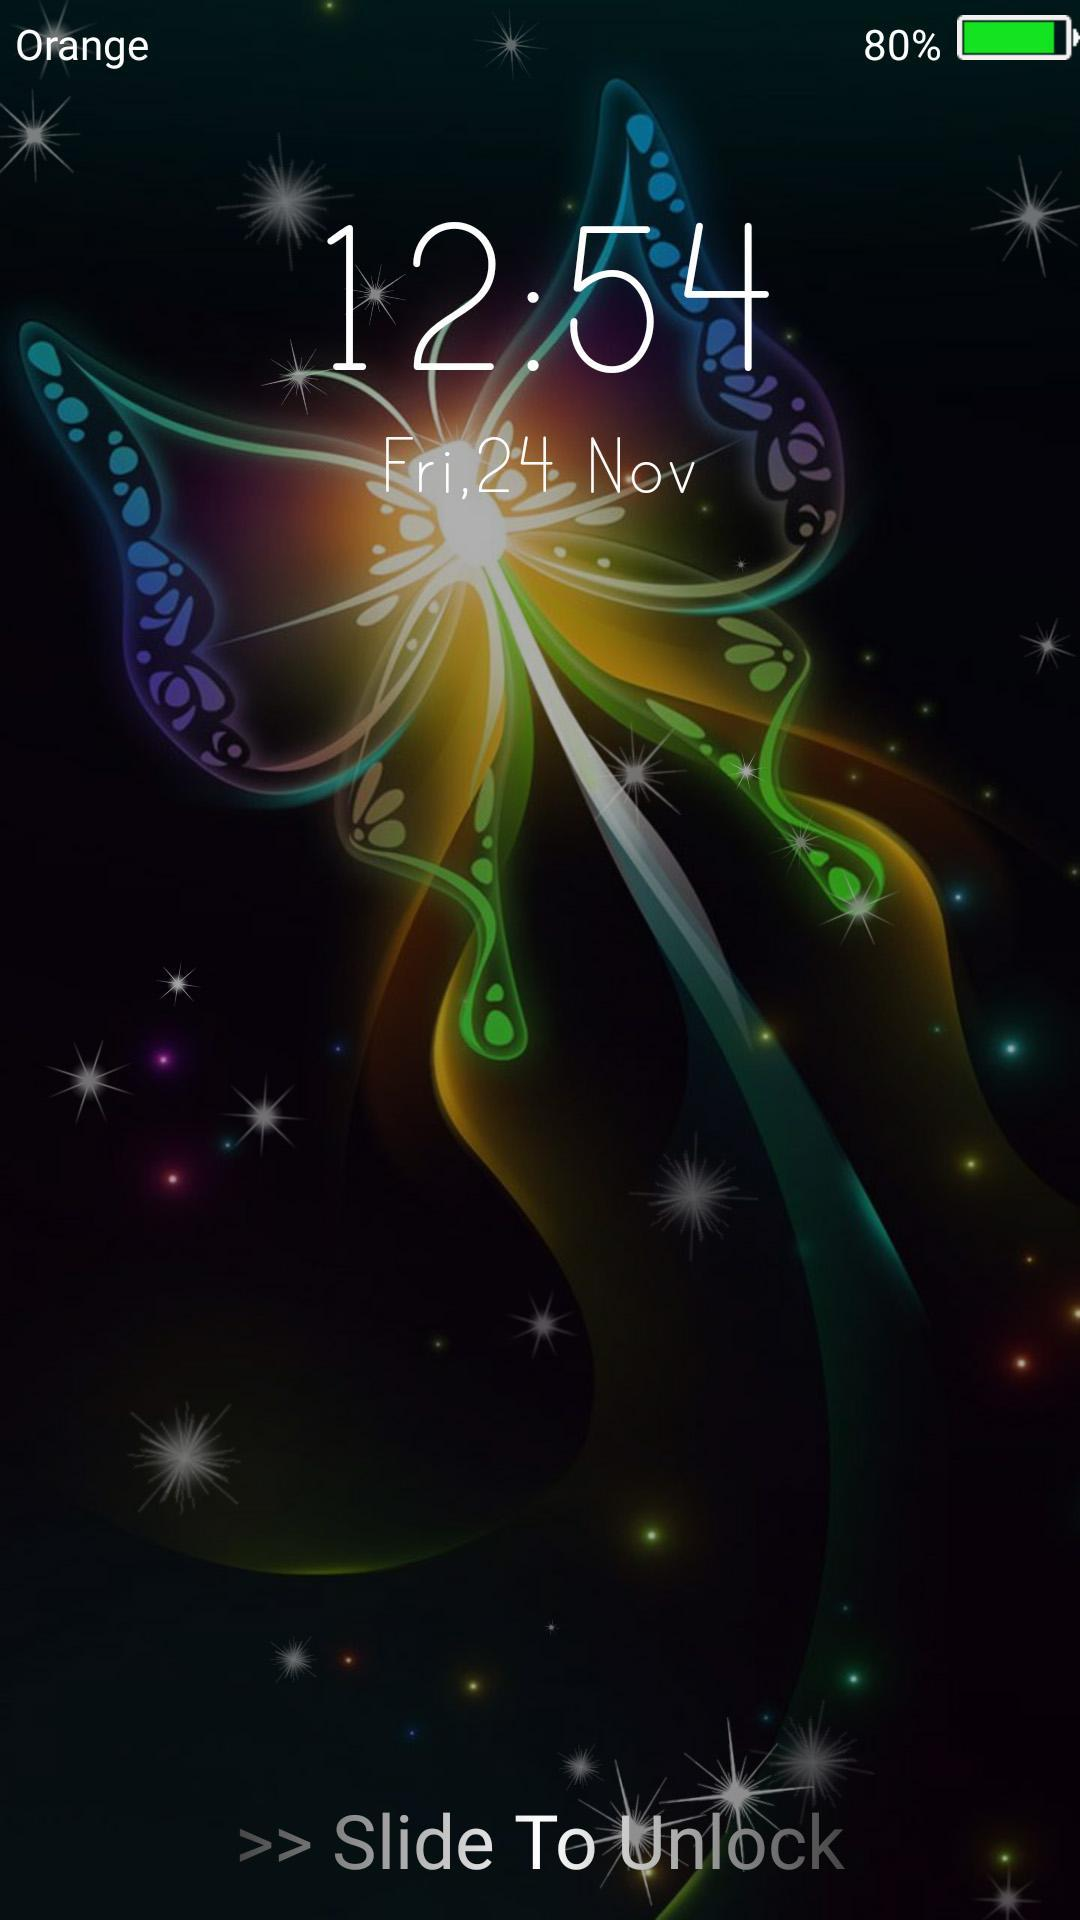 Neon Butterflies Live Wallpaper Lock Screen For Android